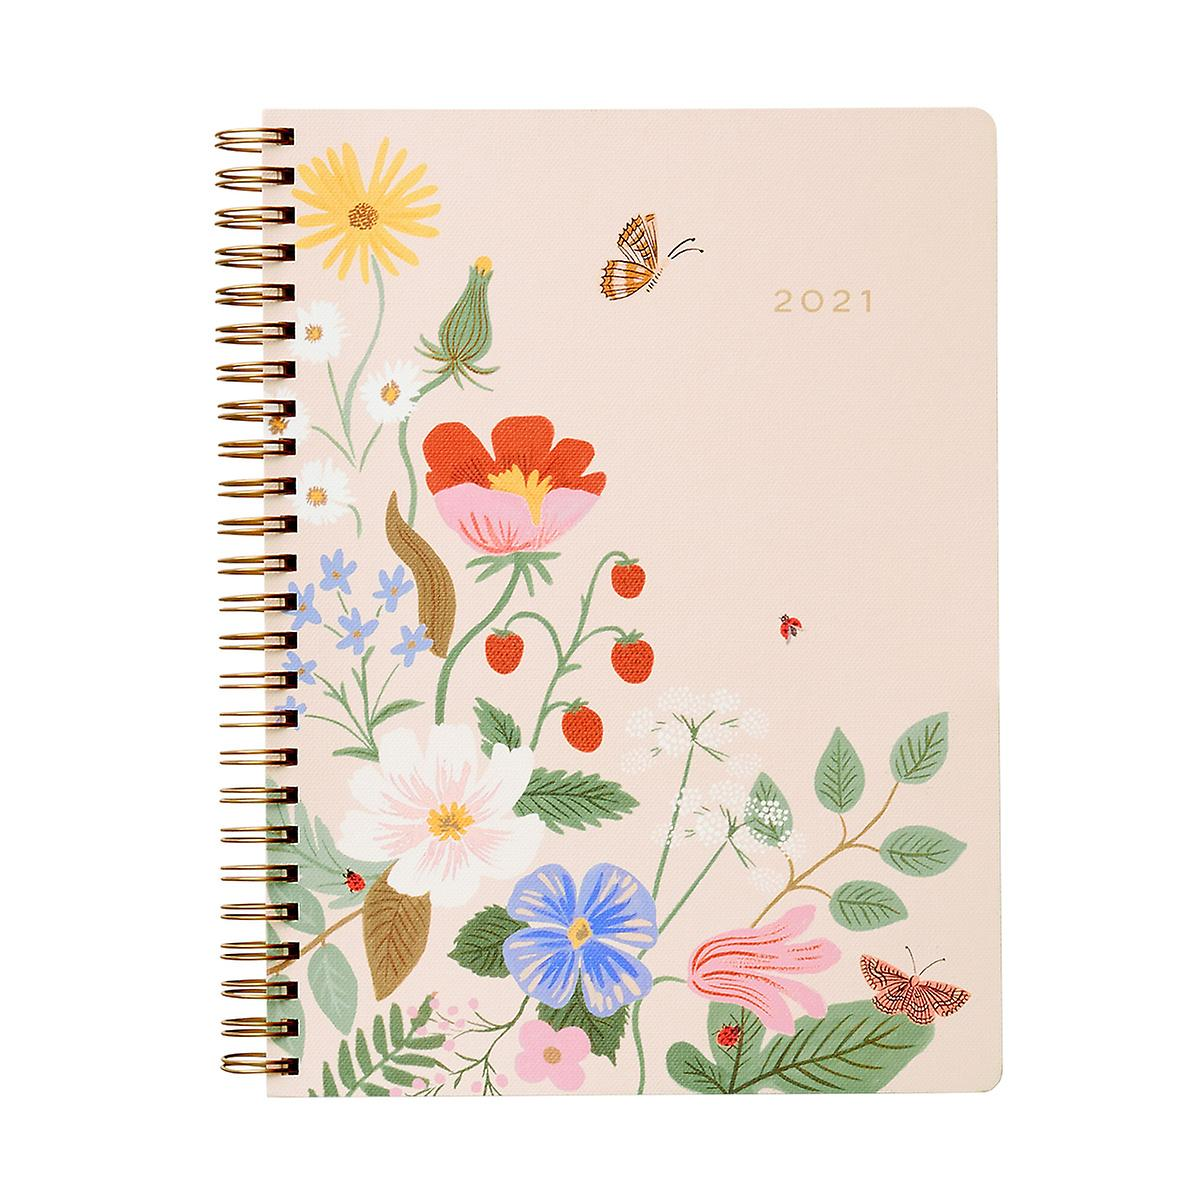 Rifle Paper Co. 2021 Spiral Planner